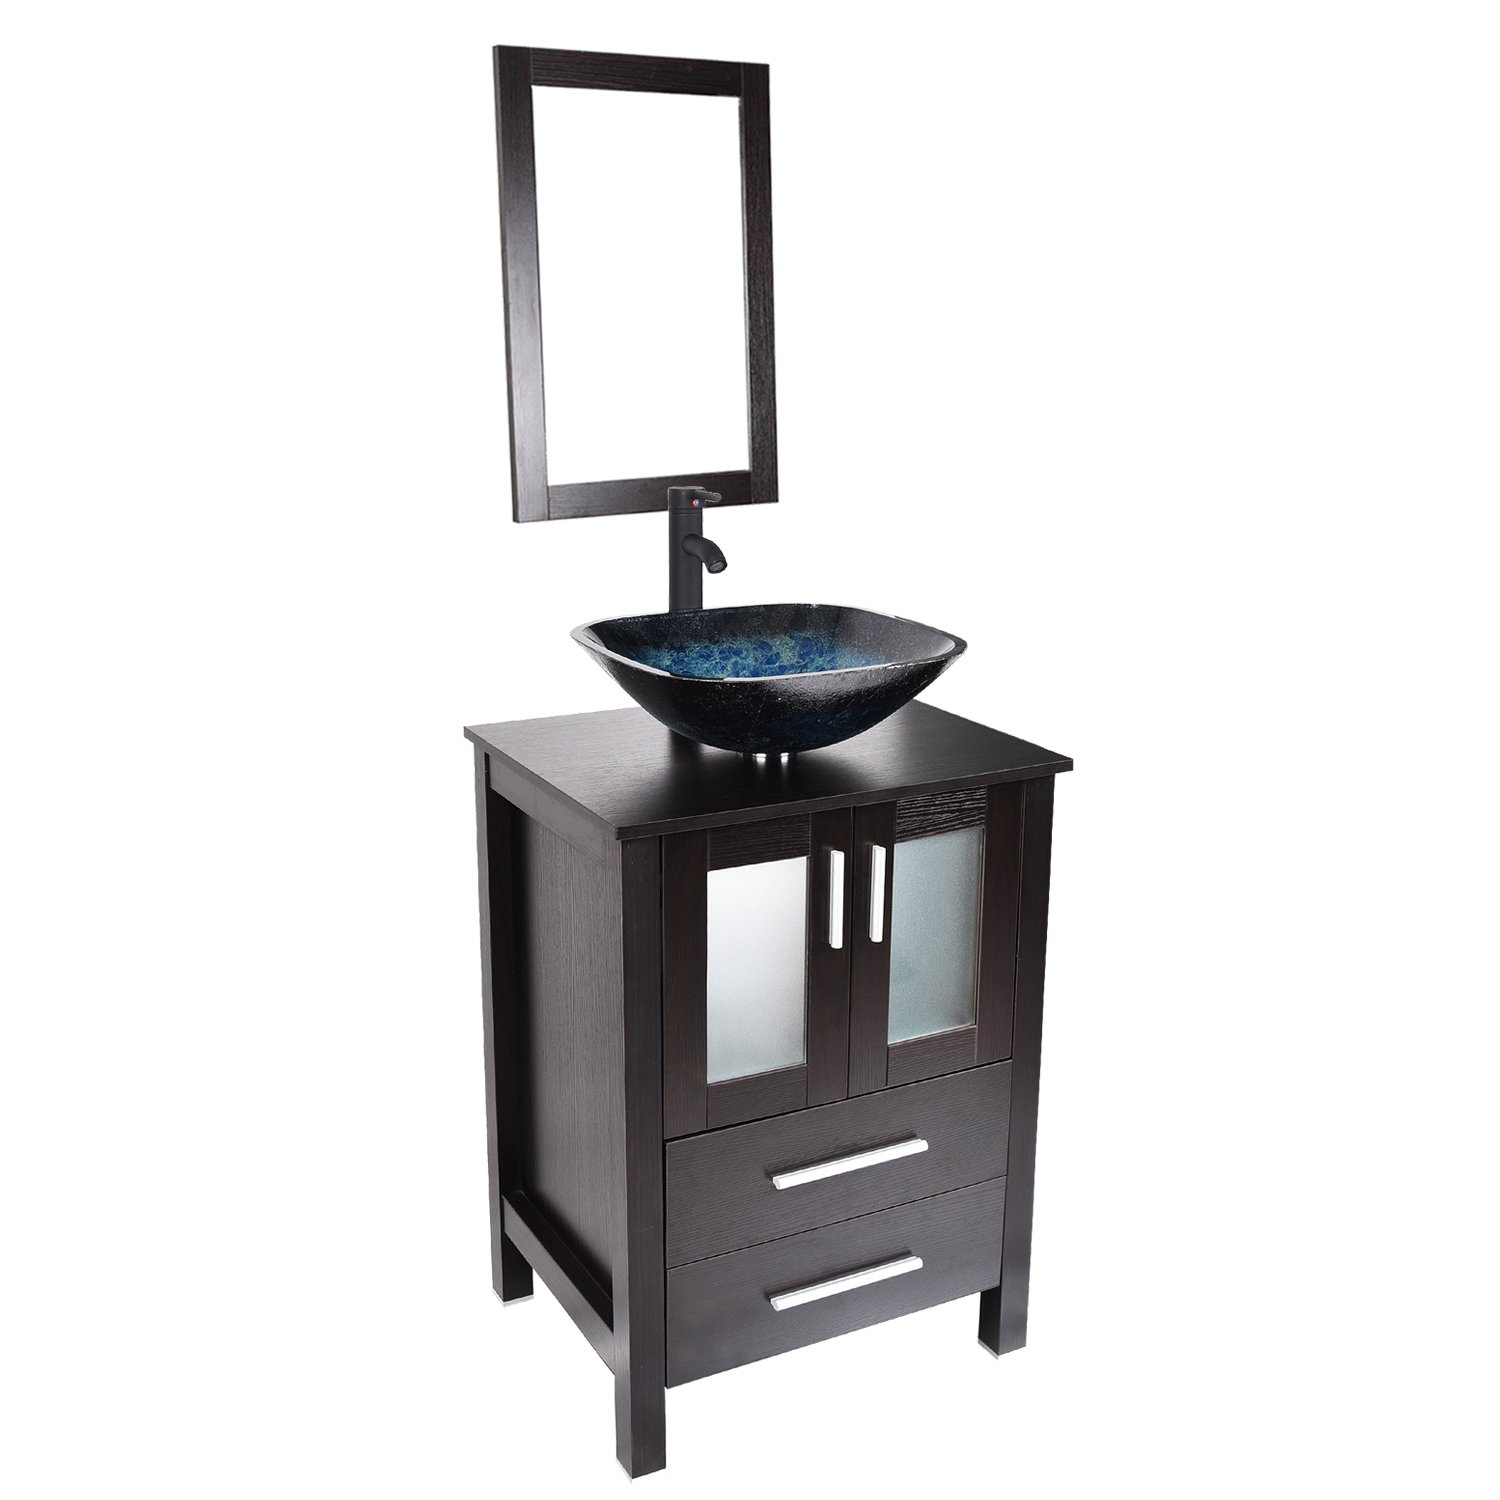 24 Inch Bathroom Vanity Modern Stand Pedestal Cabinet And Sink Combo With Blue Square Glass Vessel Sink And Single Faucet Hole Mdf Dark Brown